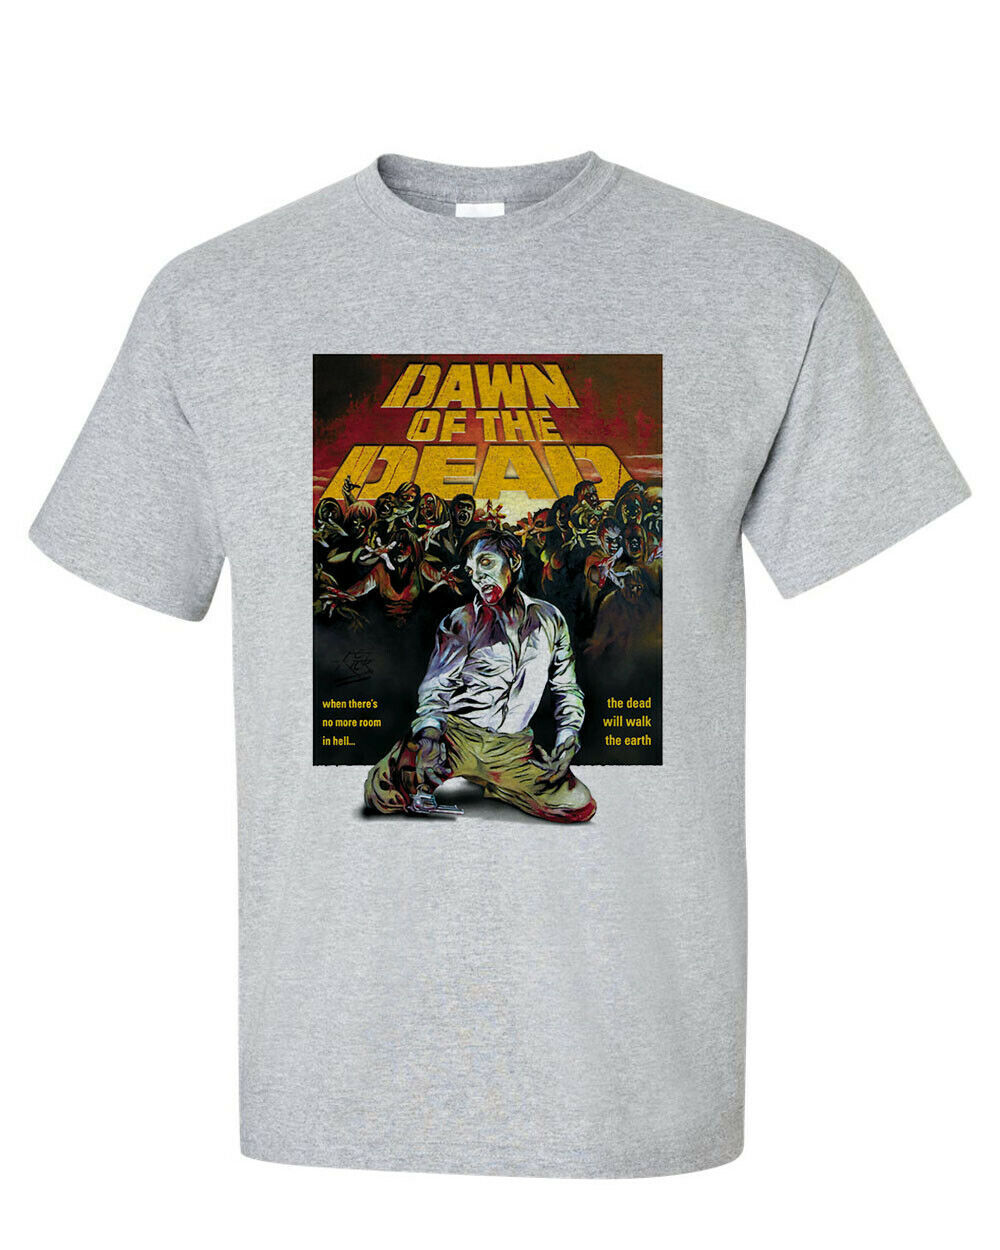 Dawn of the Dead 1978 t-shirt George A Romero Cult Horror zombie graphic tee